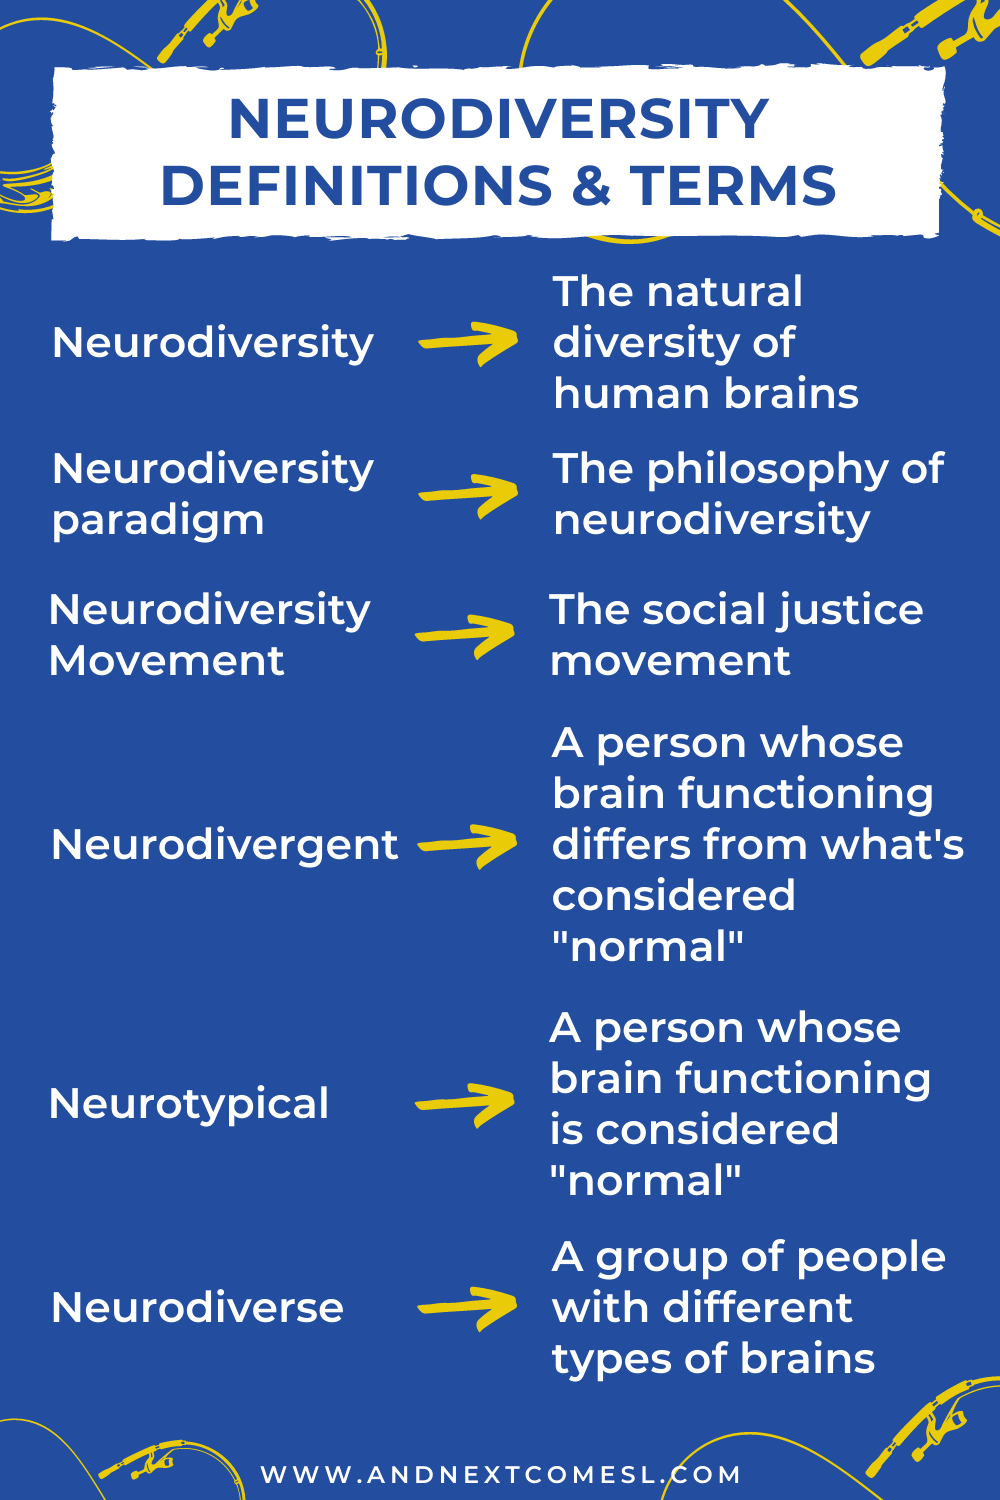 A list of common neurodiversity terms and their definitions